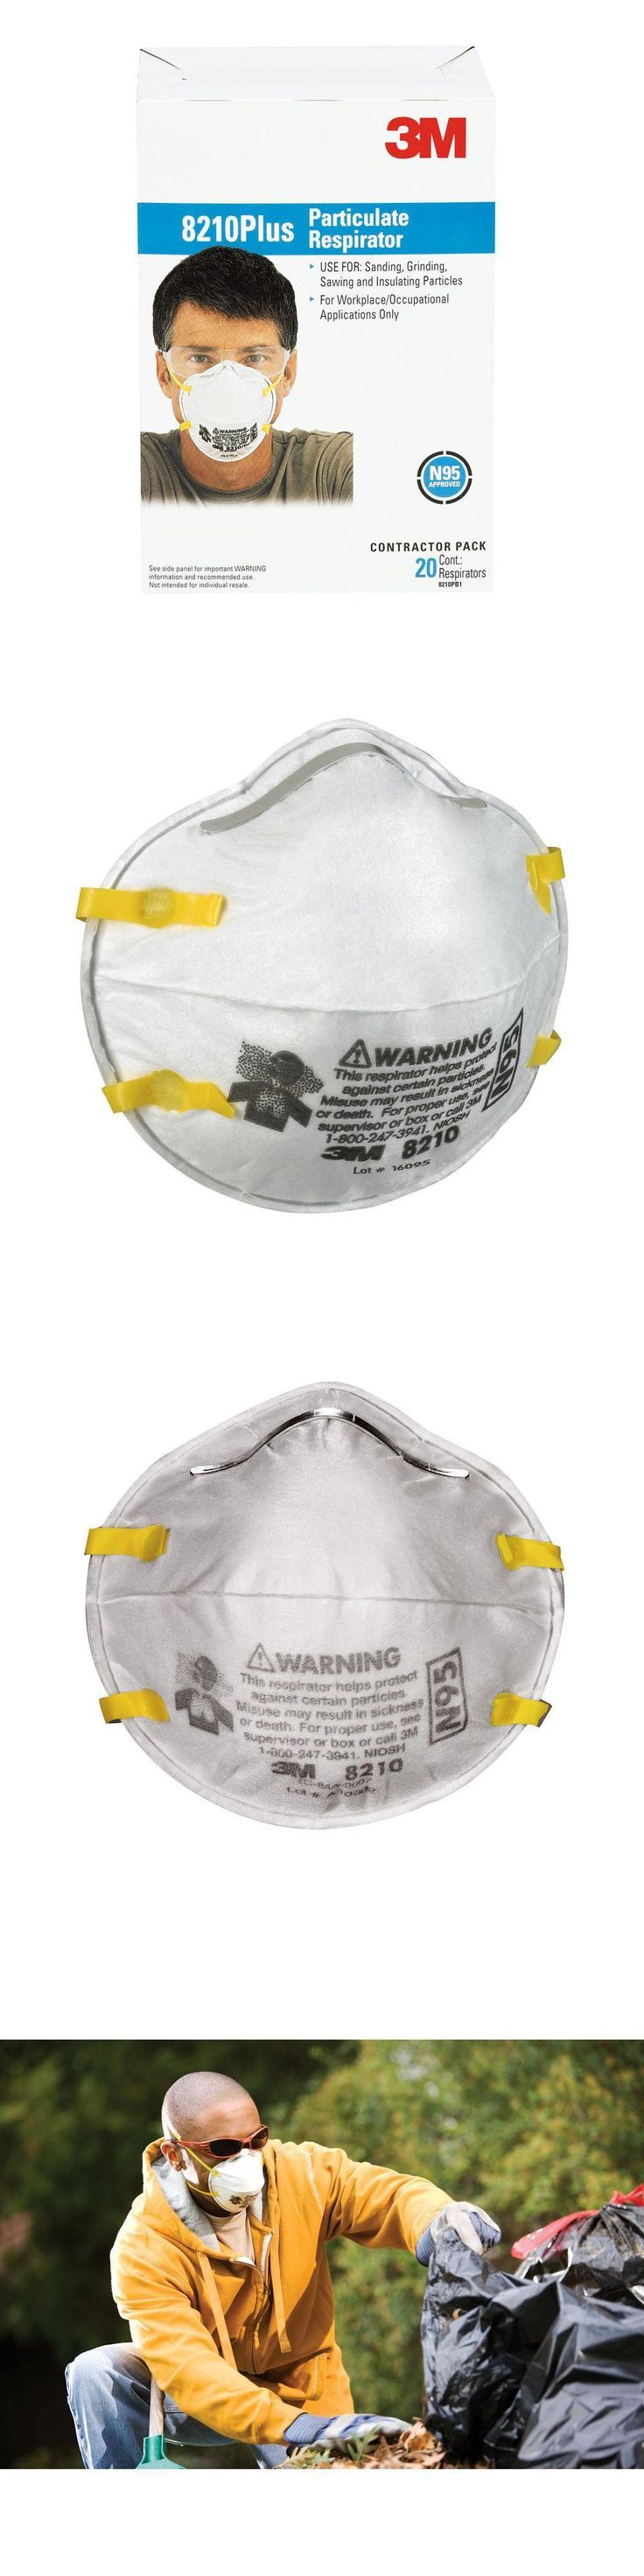 Masks Respirators and Helmets 43617: 3M N95 Particulate Respirator Dust Mask 20 Pack Protection Filter Disposable New -> BUY IT NOW ONLY: $48.8 on eBay!